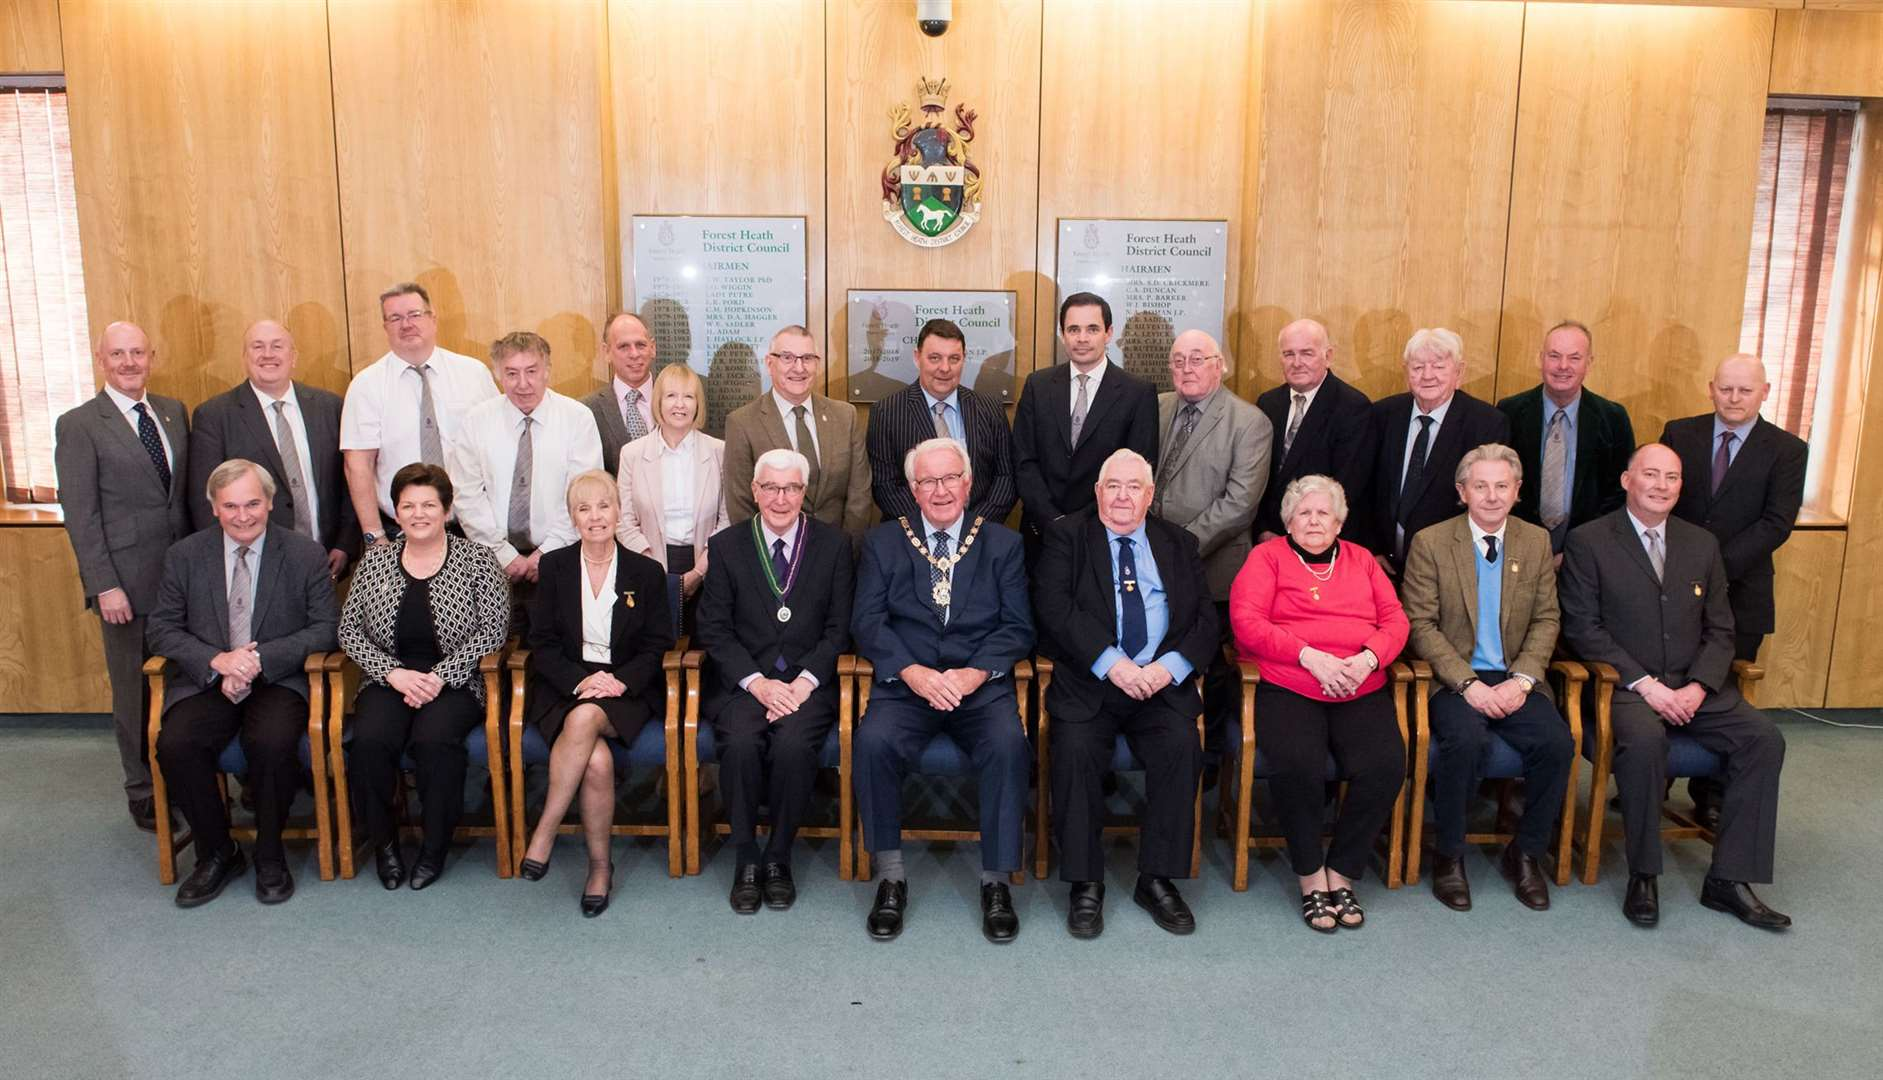 Forest Heath District Council's end of term photo